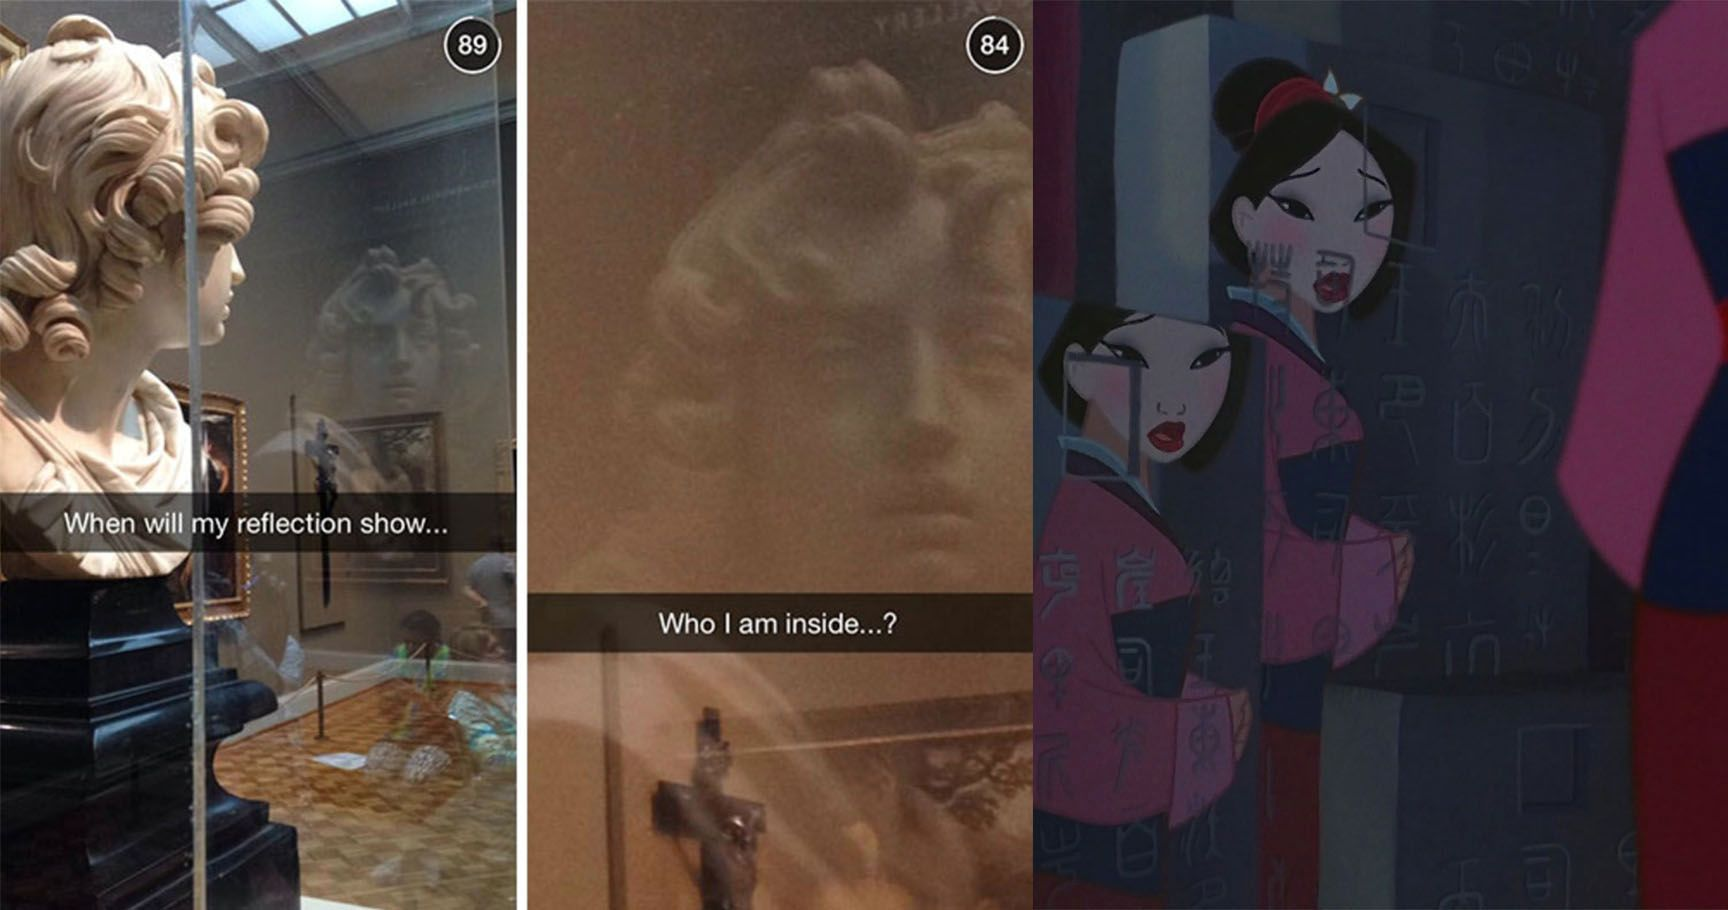 15 Hilarious Times Snapchatters Made Museums Less Boring